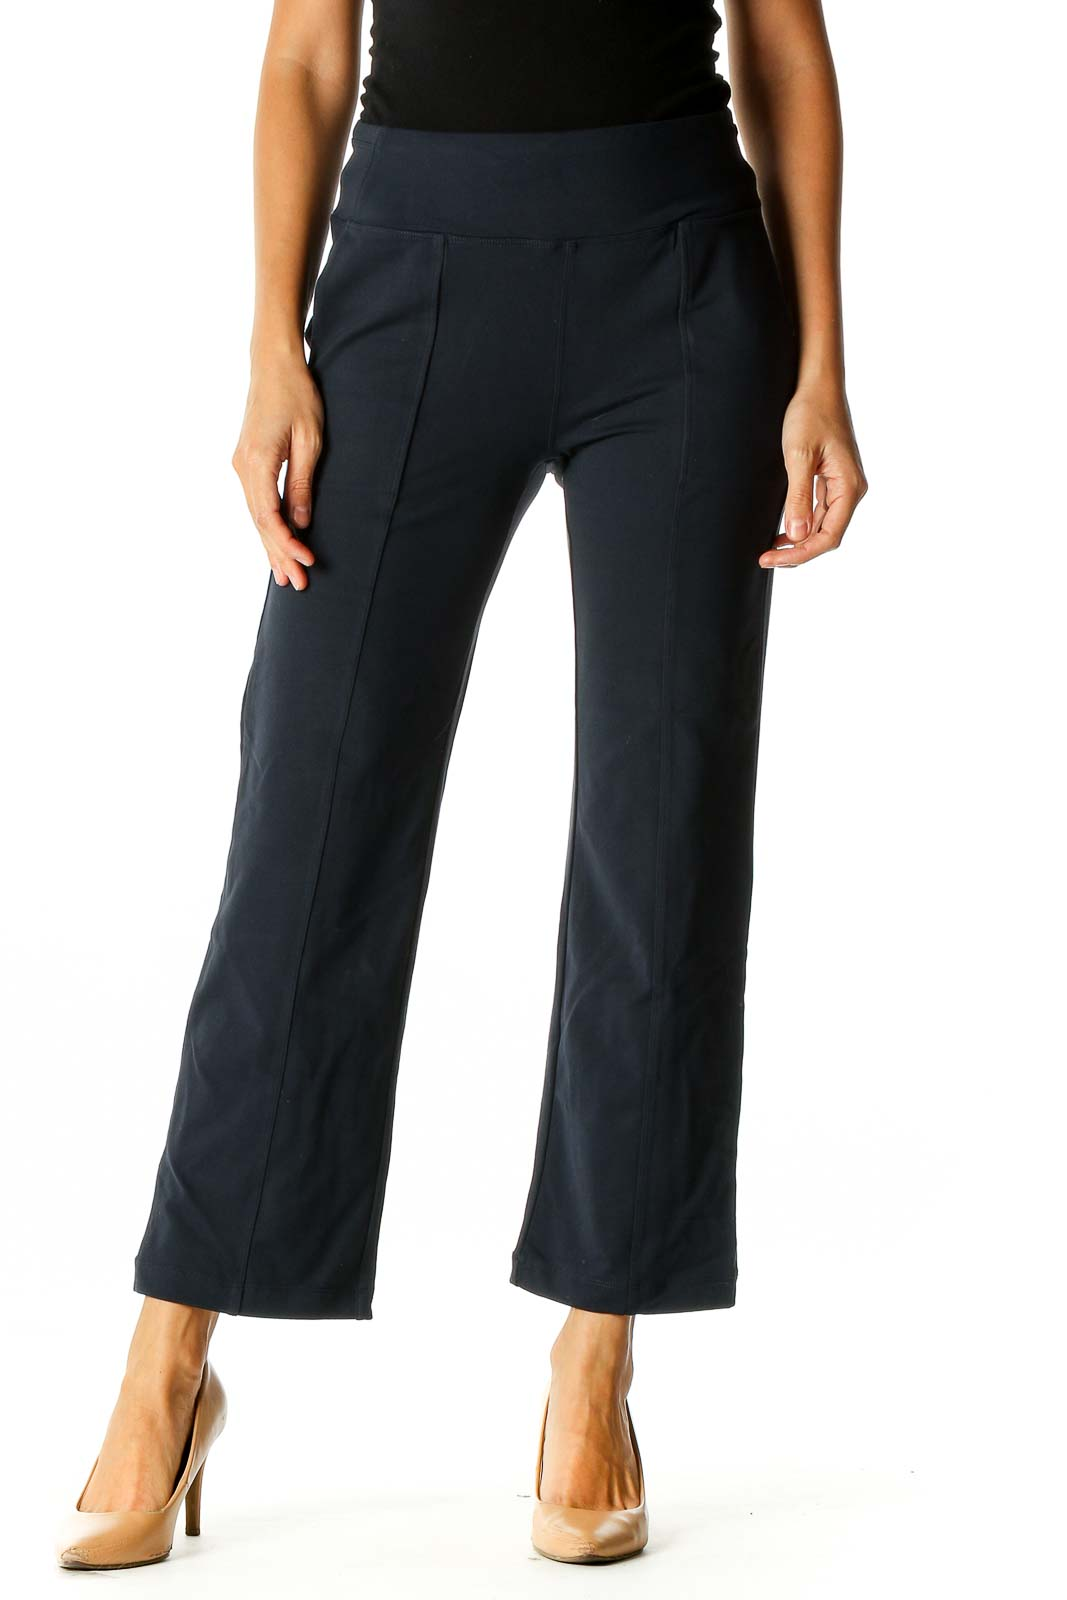 Blue Solid Activewear Trousers Front